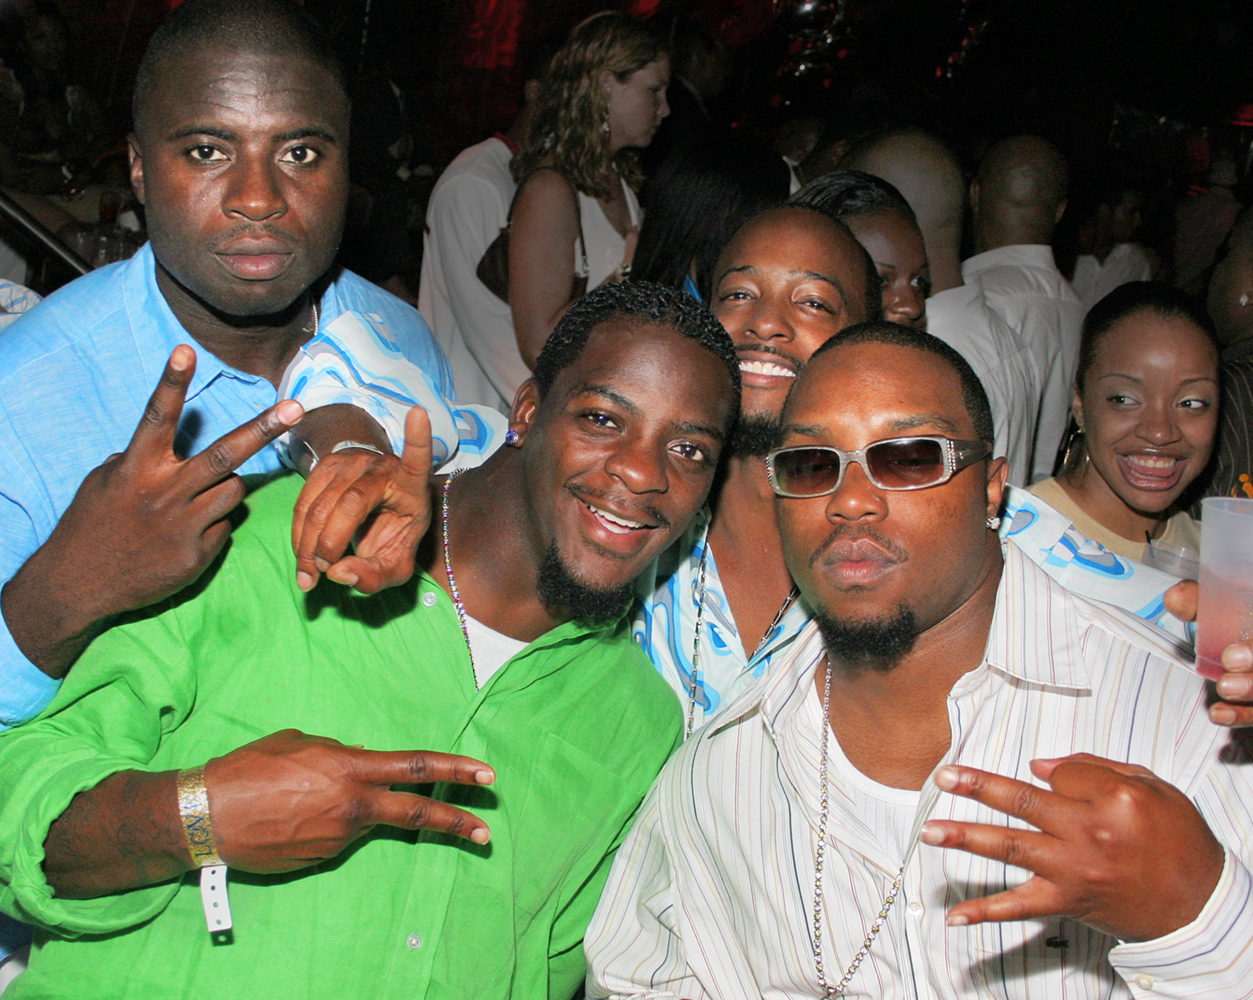 IMG_8555 clinton portis with friends on his birthday throwing signs 1000x